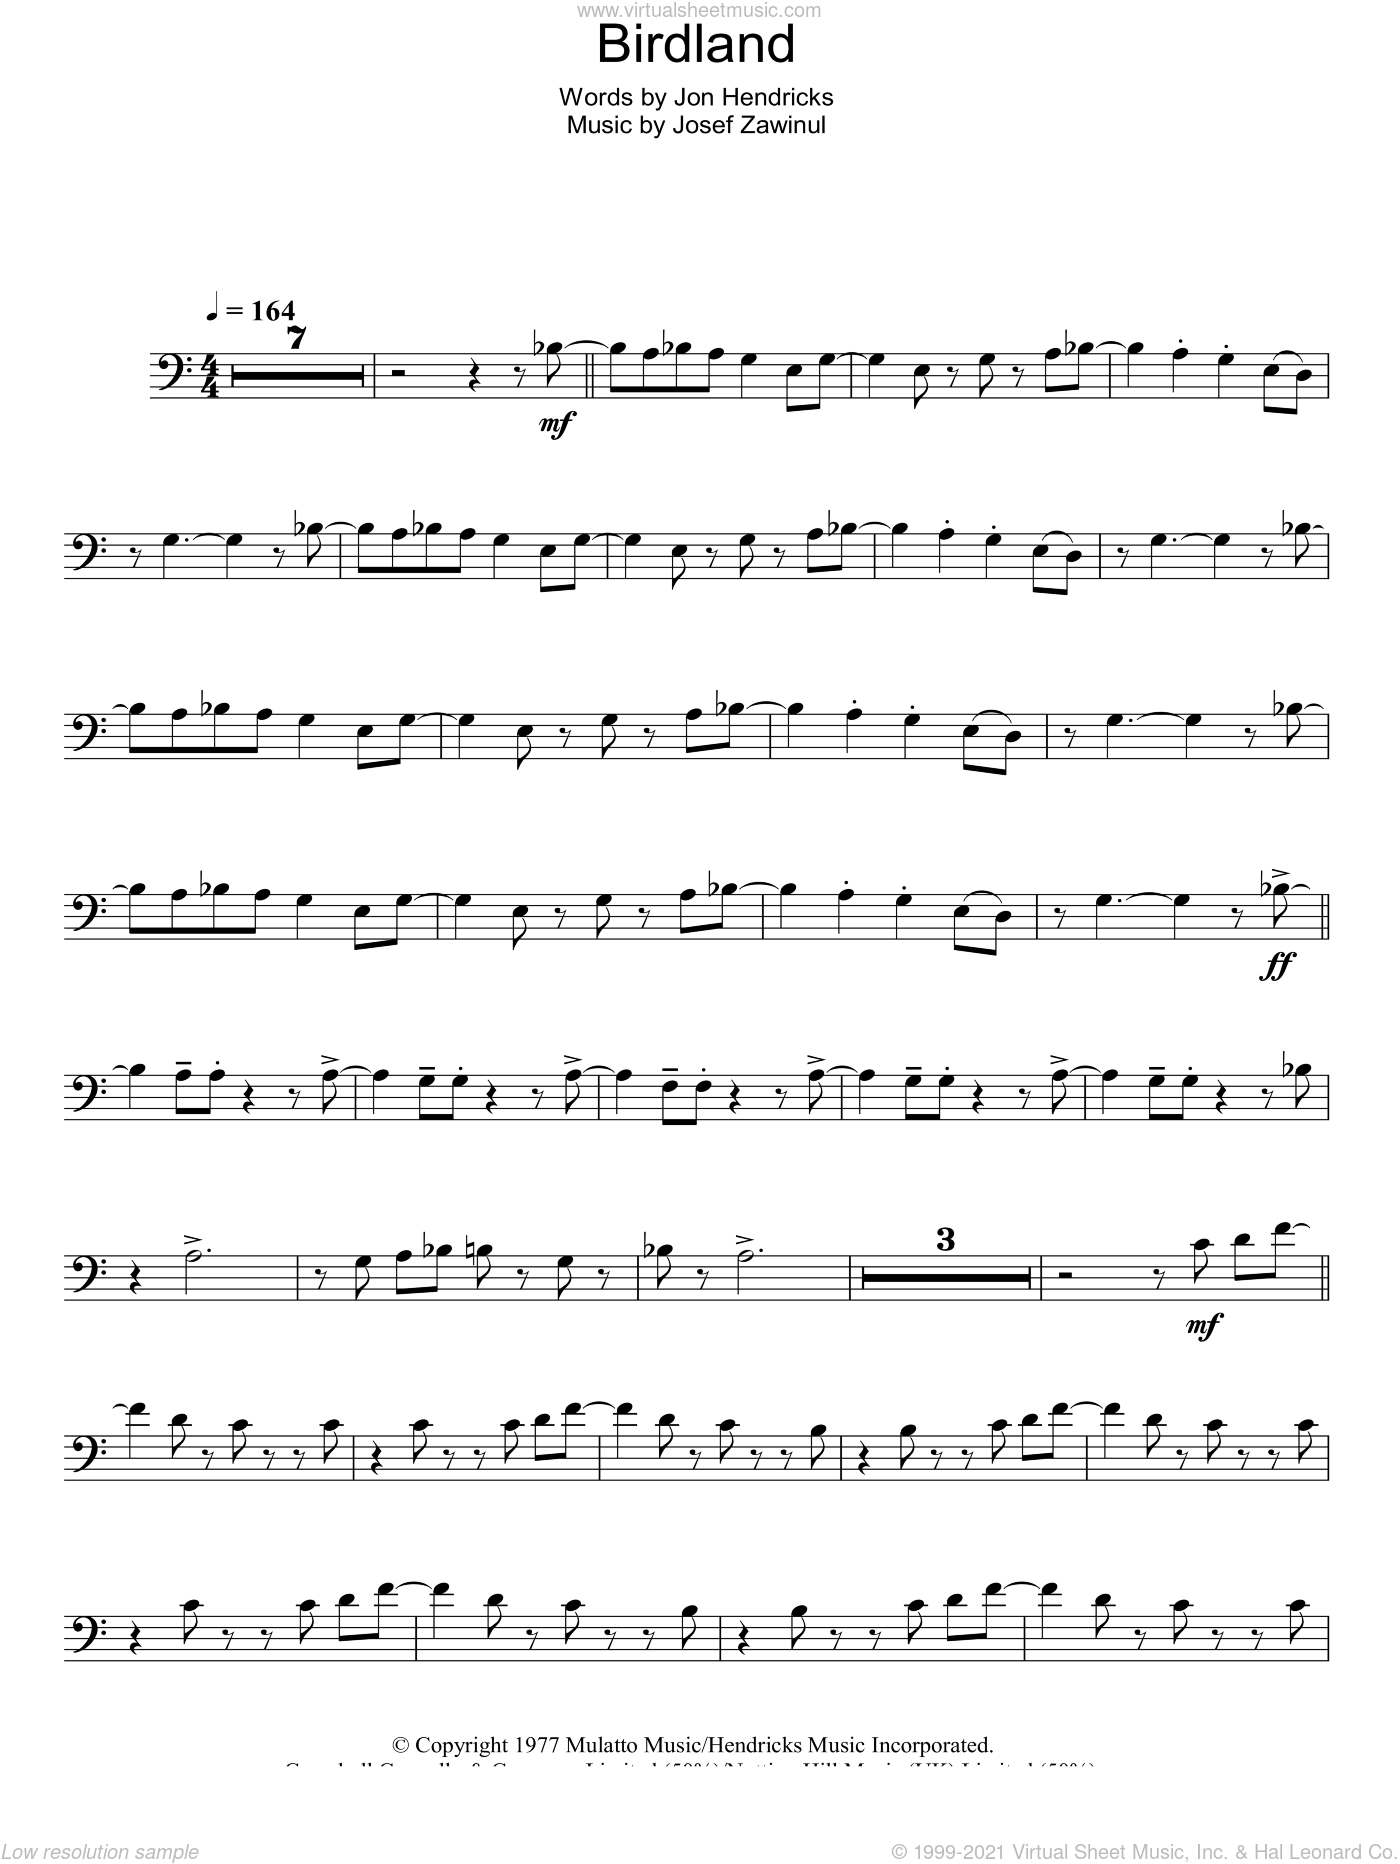 Birdland sheet music for voice, piano or guitar by Josef Zawinul